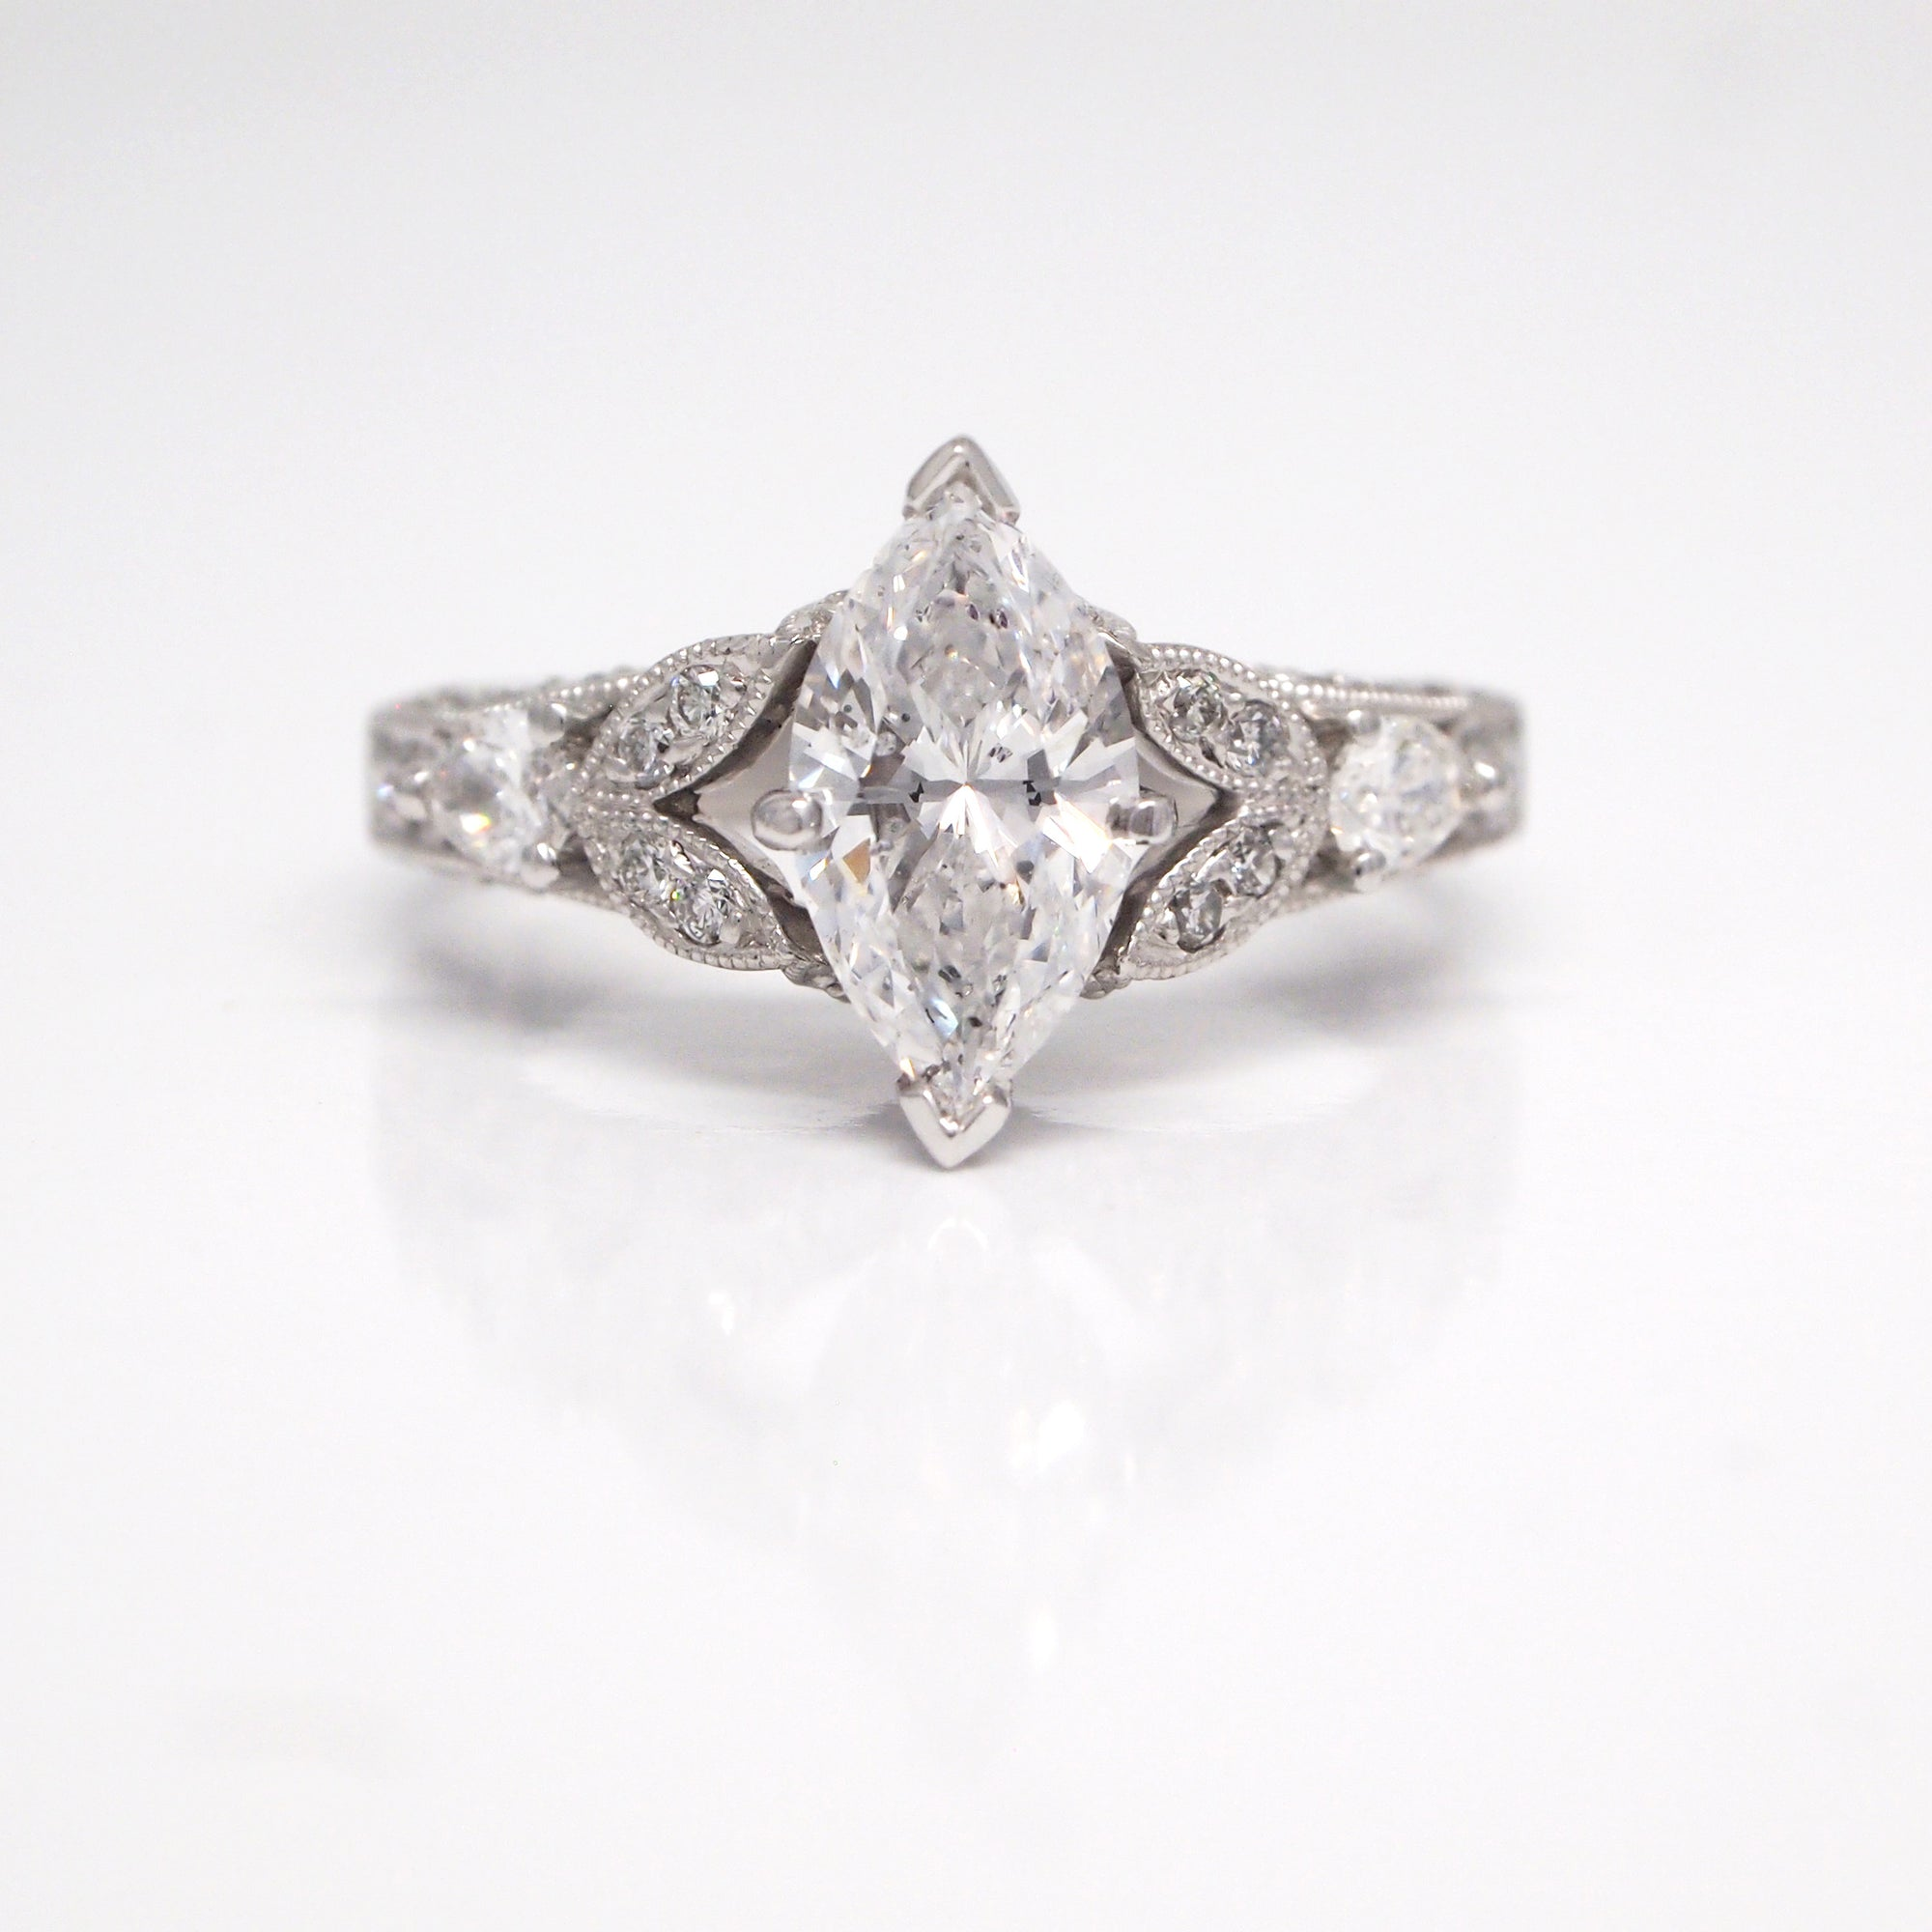 Art Deco Style 18K White Gold Diamond Engagement Ring